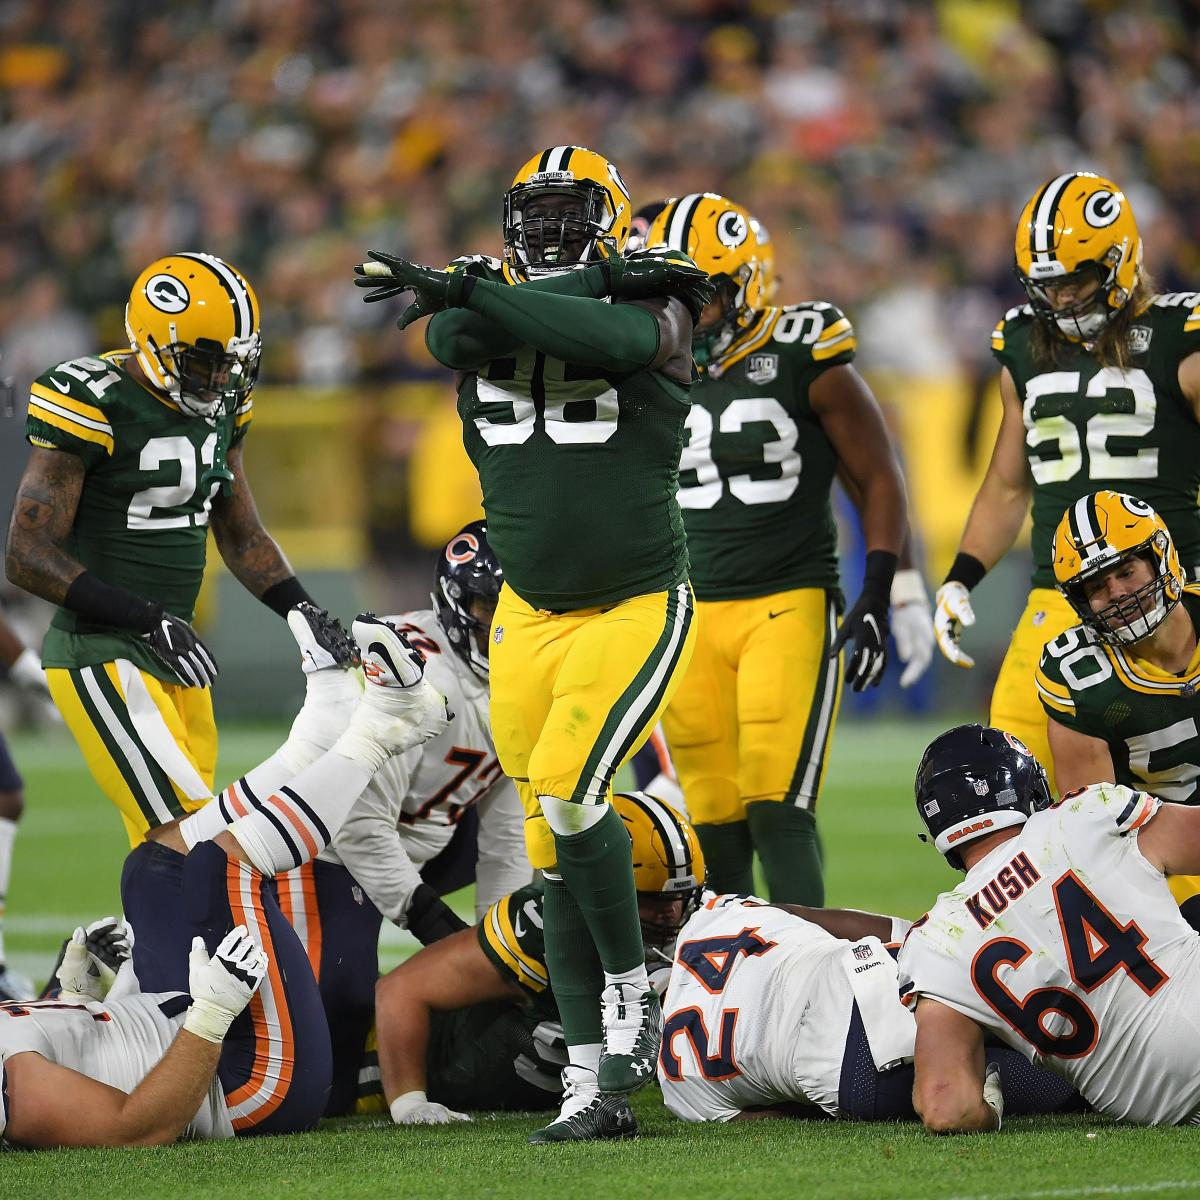 Packers' Muhammad Wilkerson Carted off the Field with Ankle Injury vs. Redskins